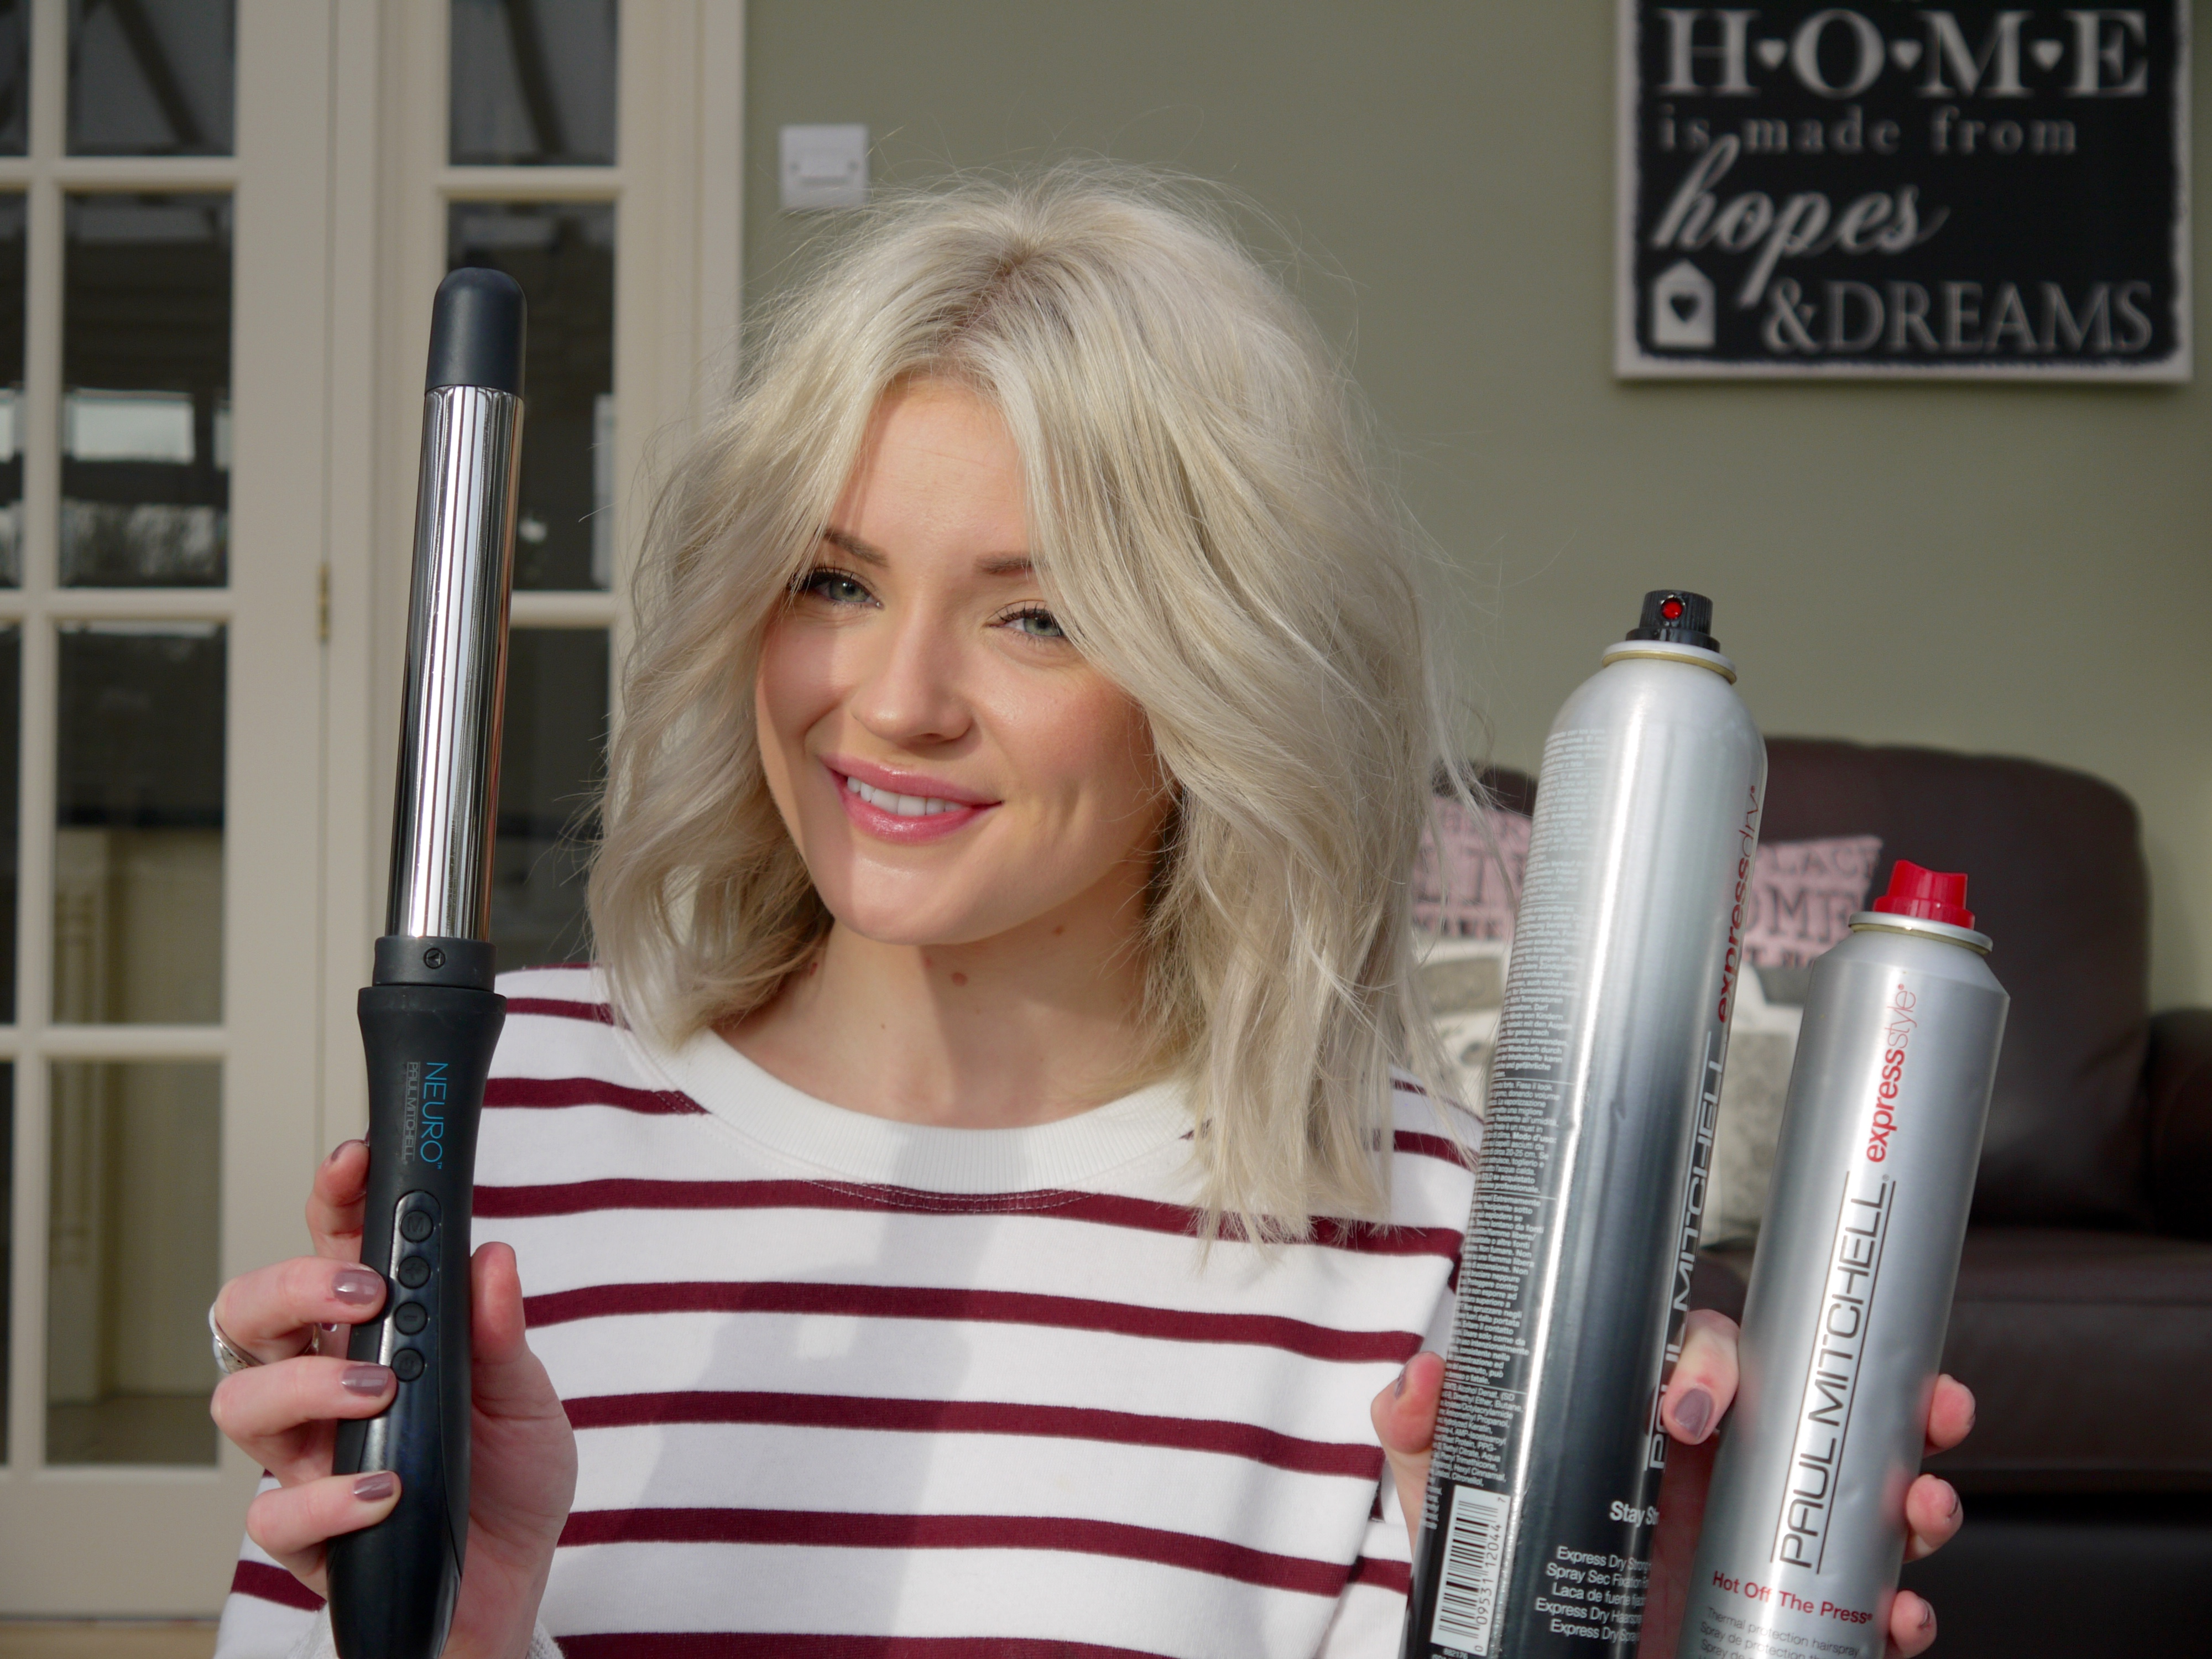 laura byrnes, lauras little locket, best haircare for blondes, how to get blonde ashy hair, care for blonde hair